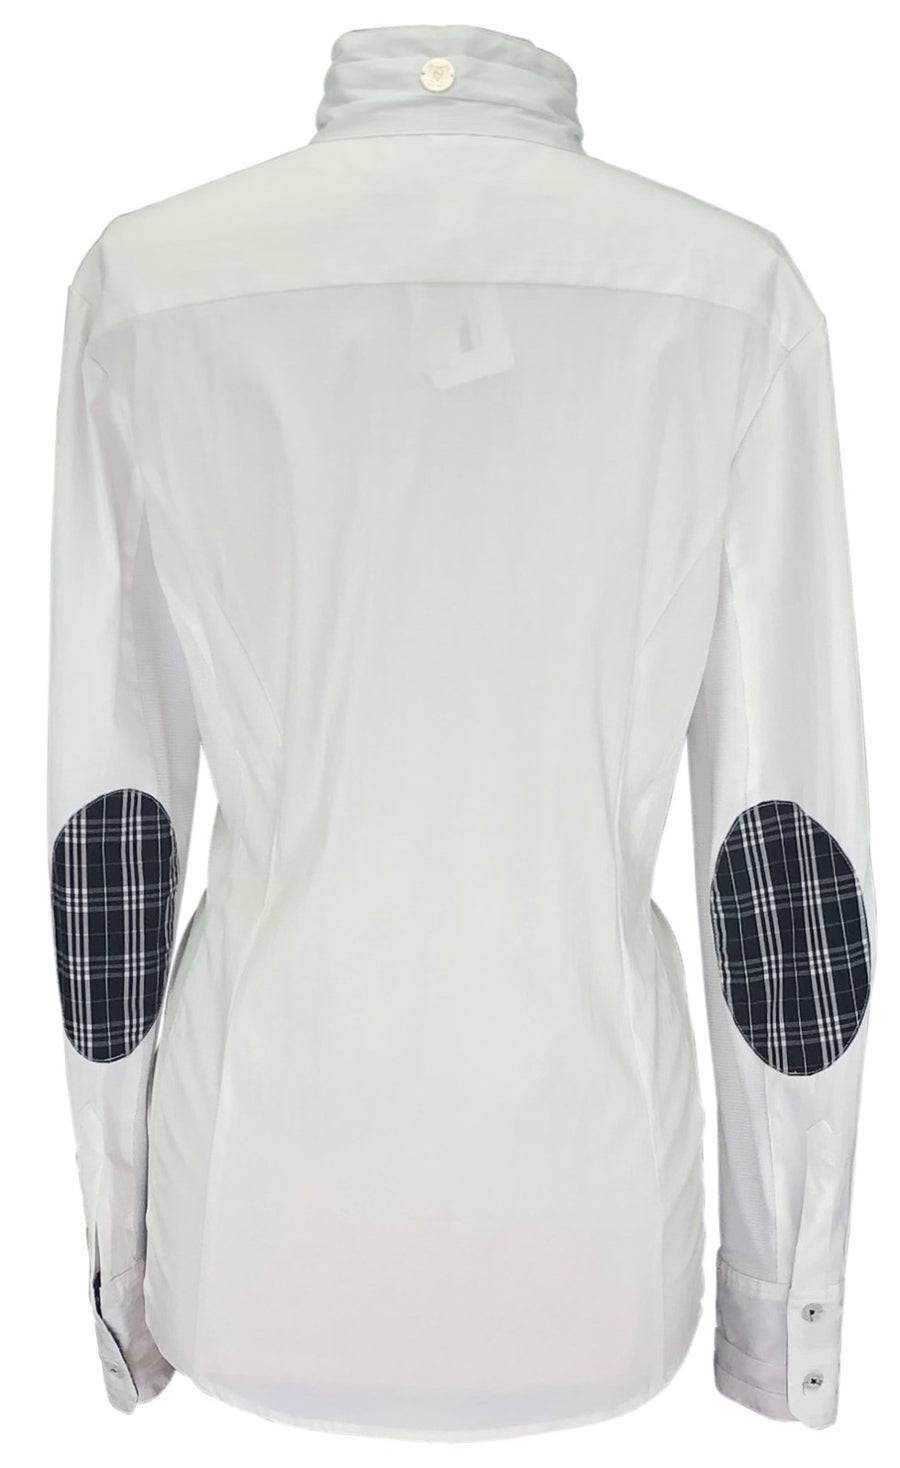 back view of Asmar Equestrian Show Shirt in White/Black Plaid